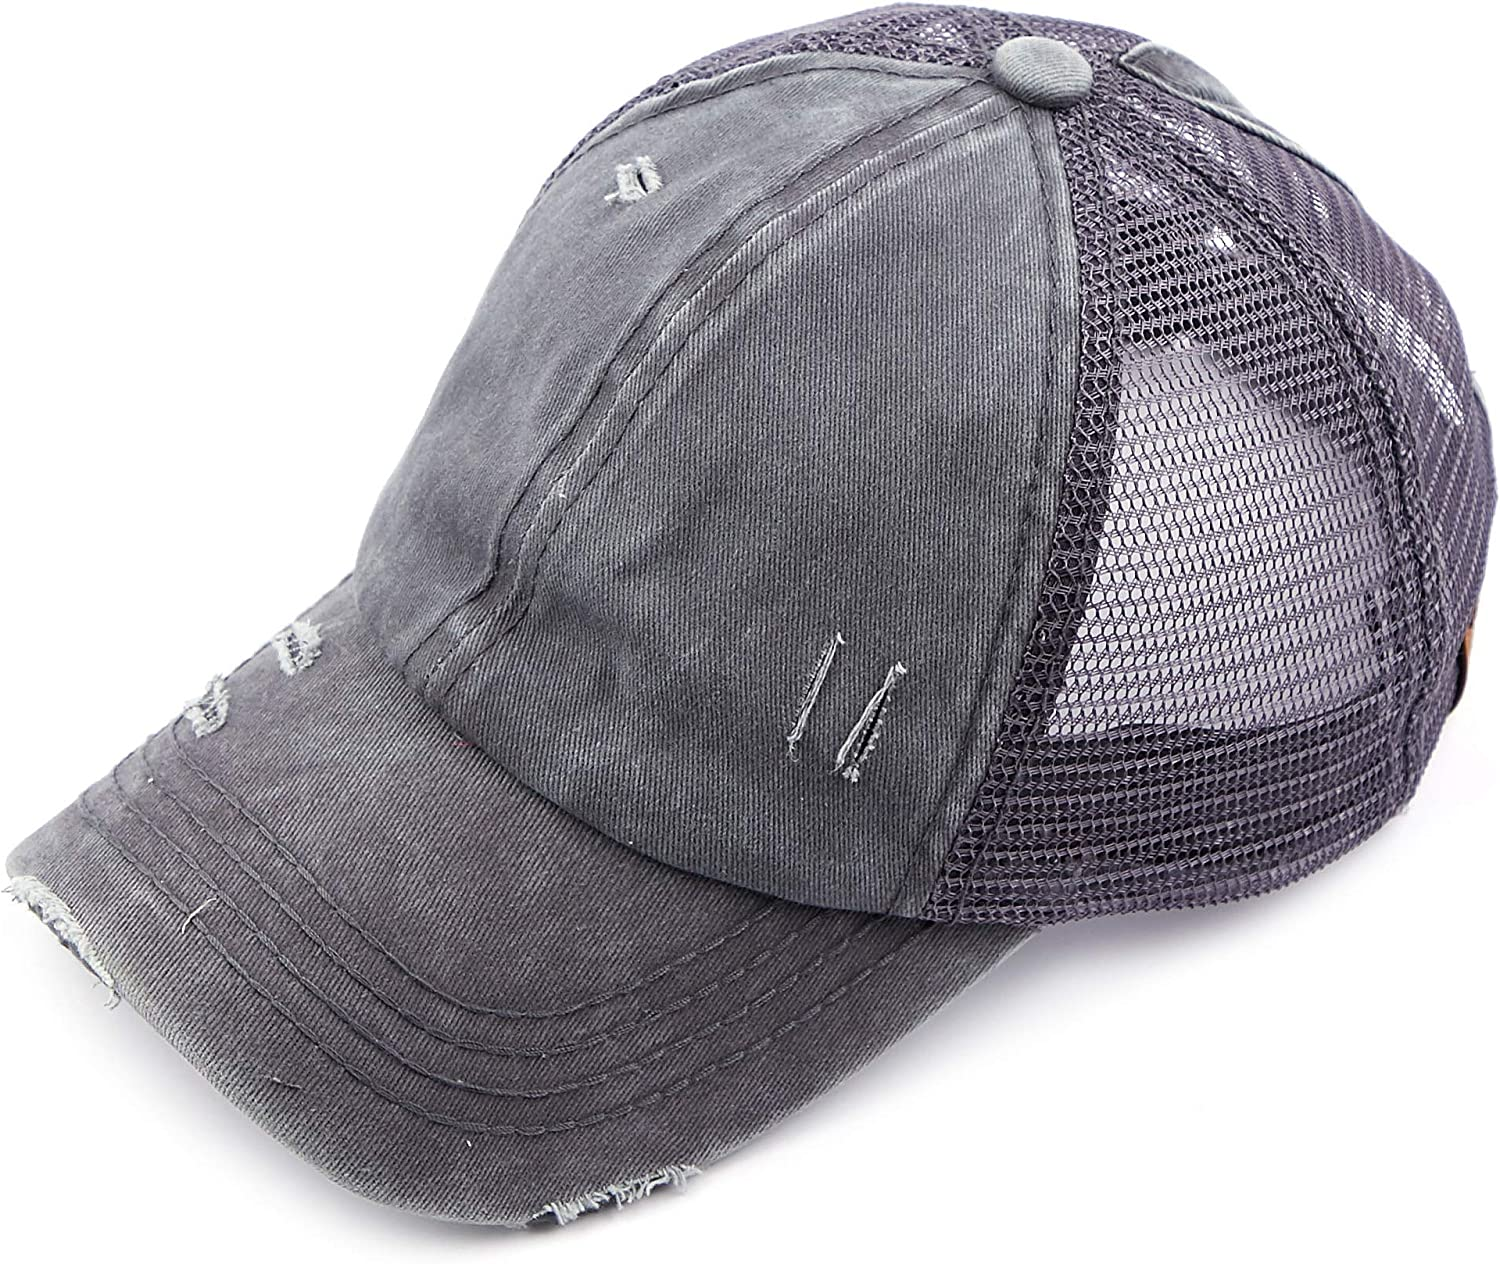 C.C National products Washed Distressed Cotton Denim Adjustable Hat Baseb Cheap mail order shopping Ponytail